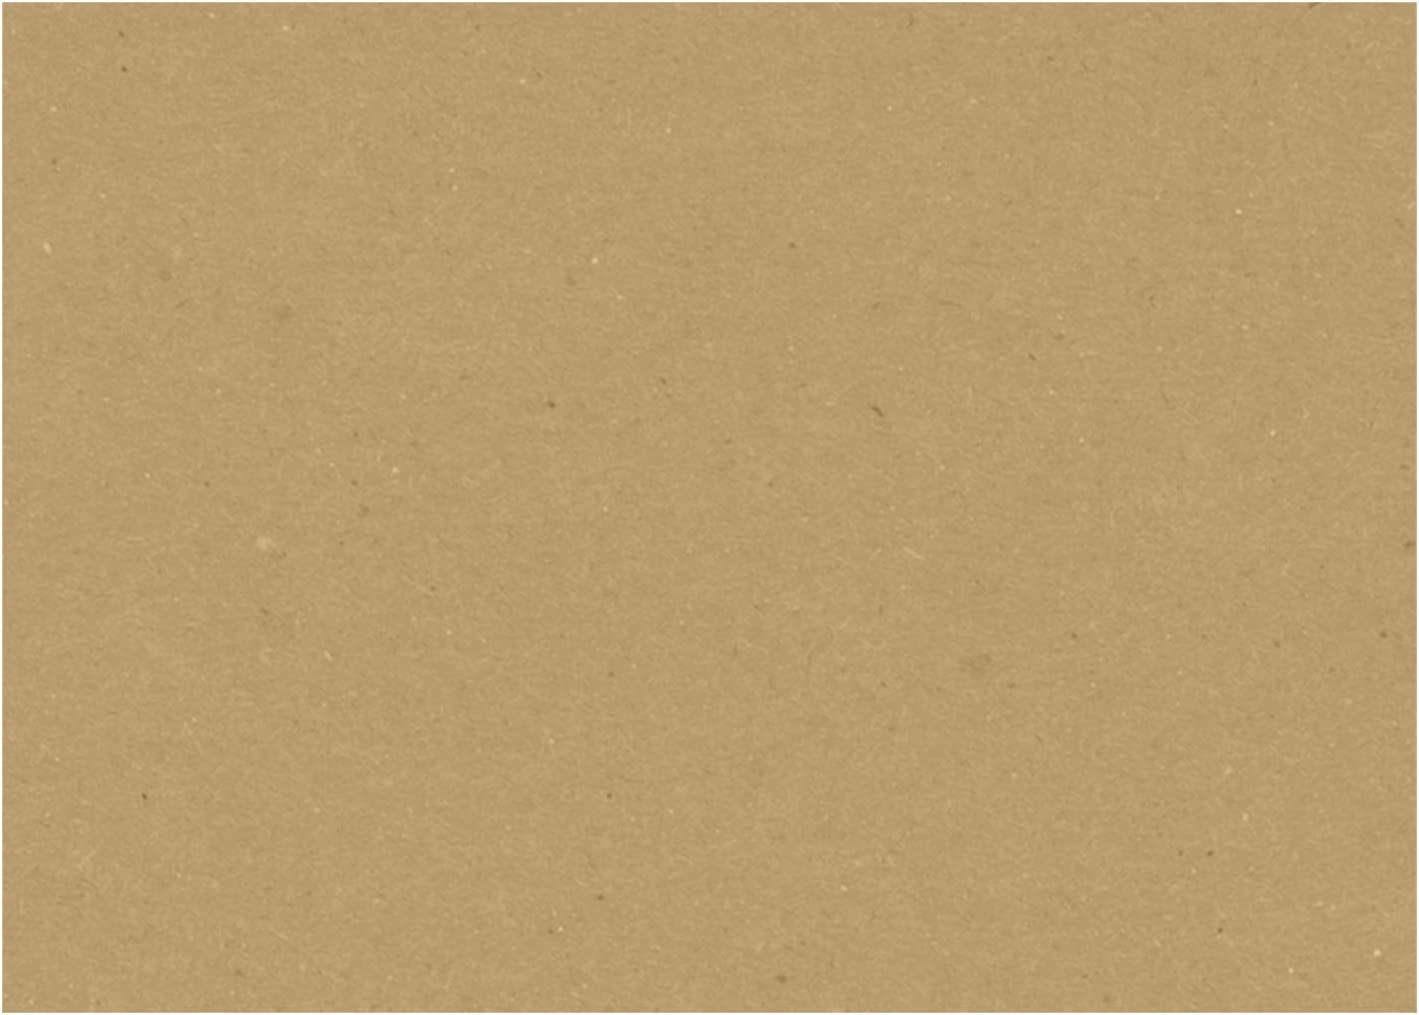 Scrapbook and Office Supplies Cards 500 Pack Grocery Bag LUXPaper 5 x 7 Flat Cardss in 18pt Grocery Bag for Crafts